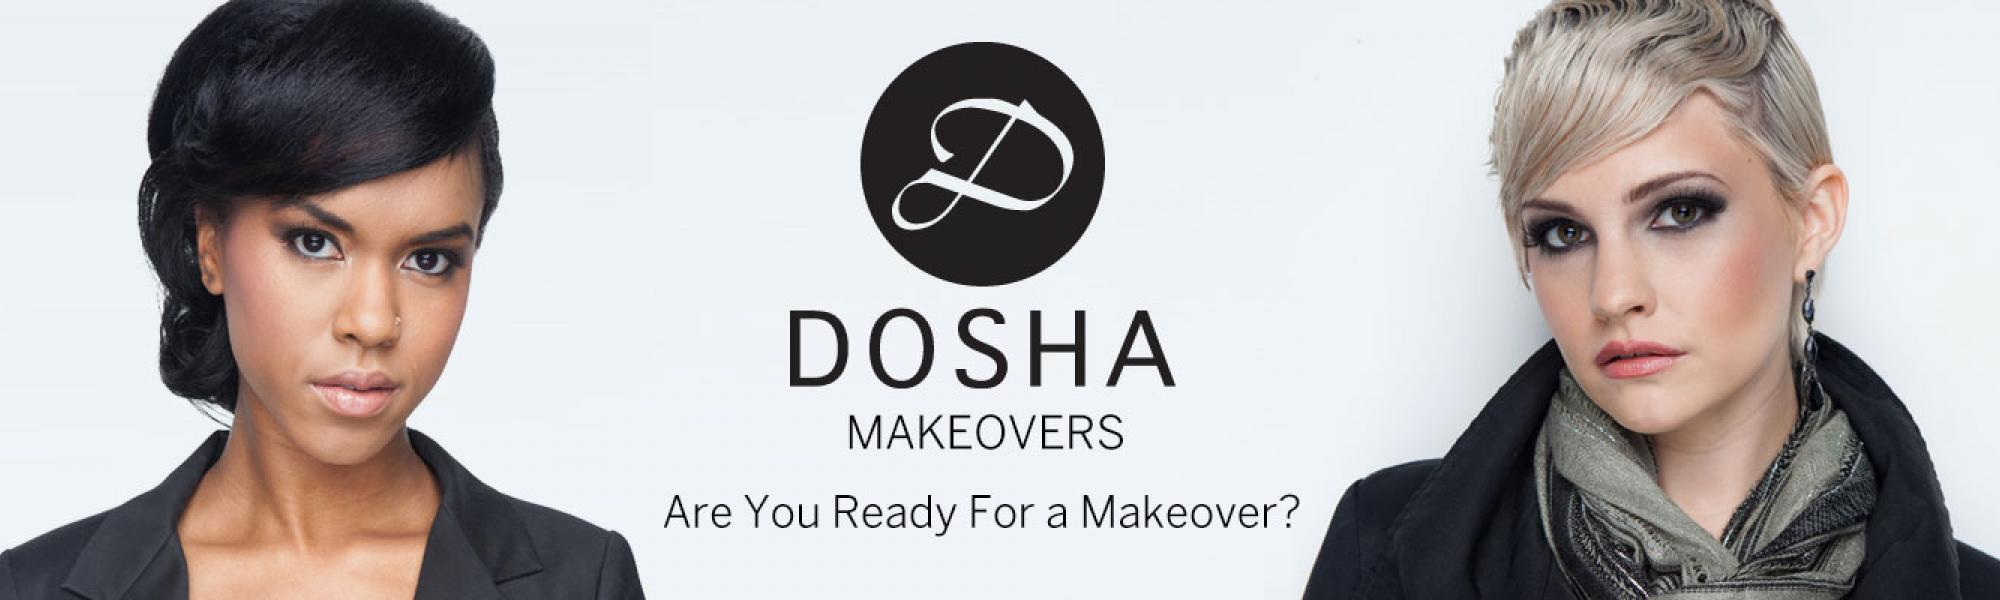 Dosha Salon Spa Makeovers - Are You Ready For a Makeover?